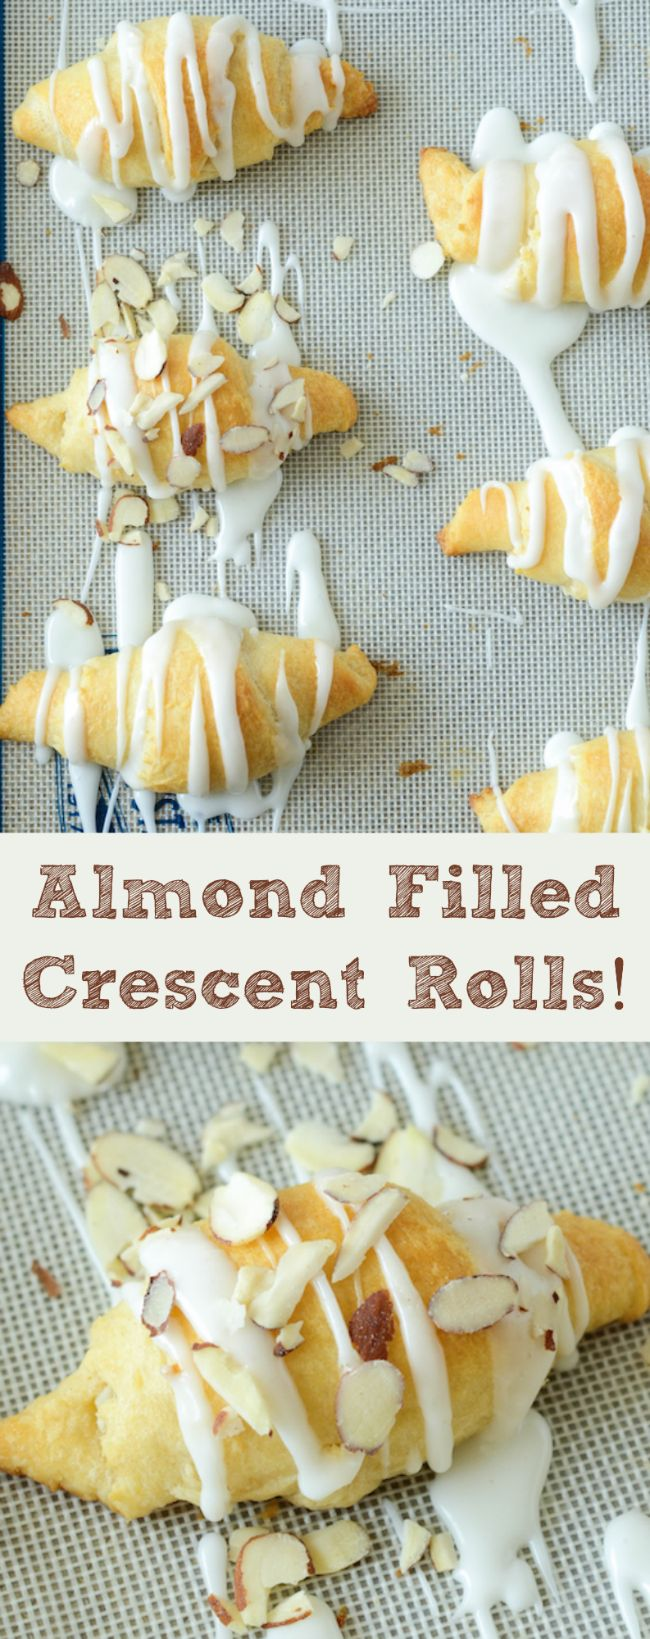 Almond Filled Crescent Rolls! Quick and easy breakfast with almond paste and a sweet almond frosting!